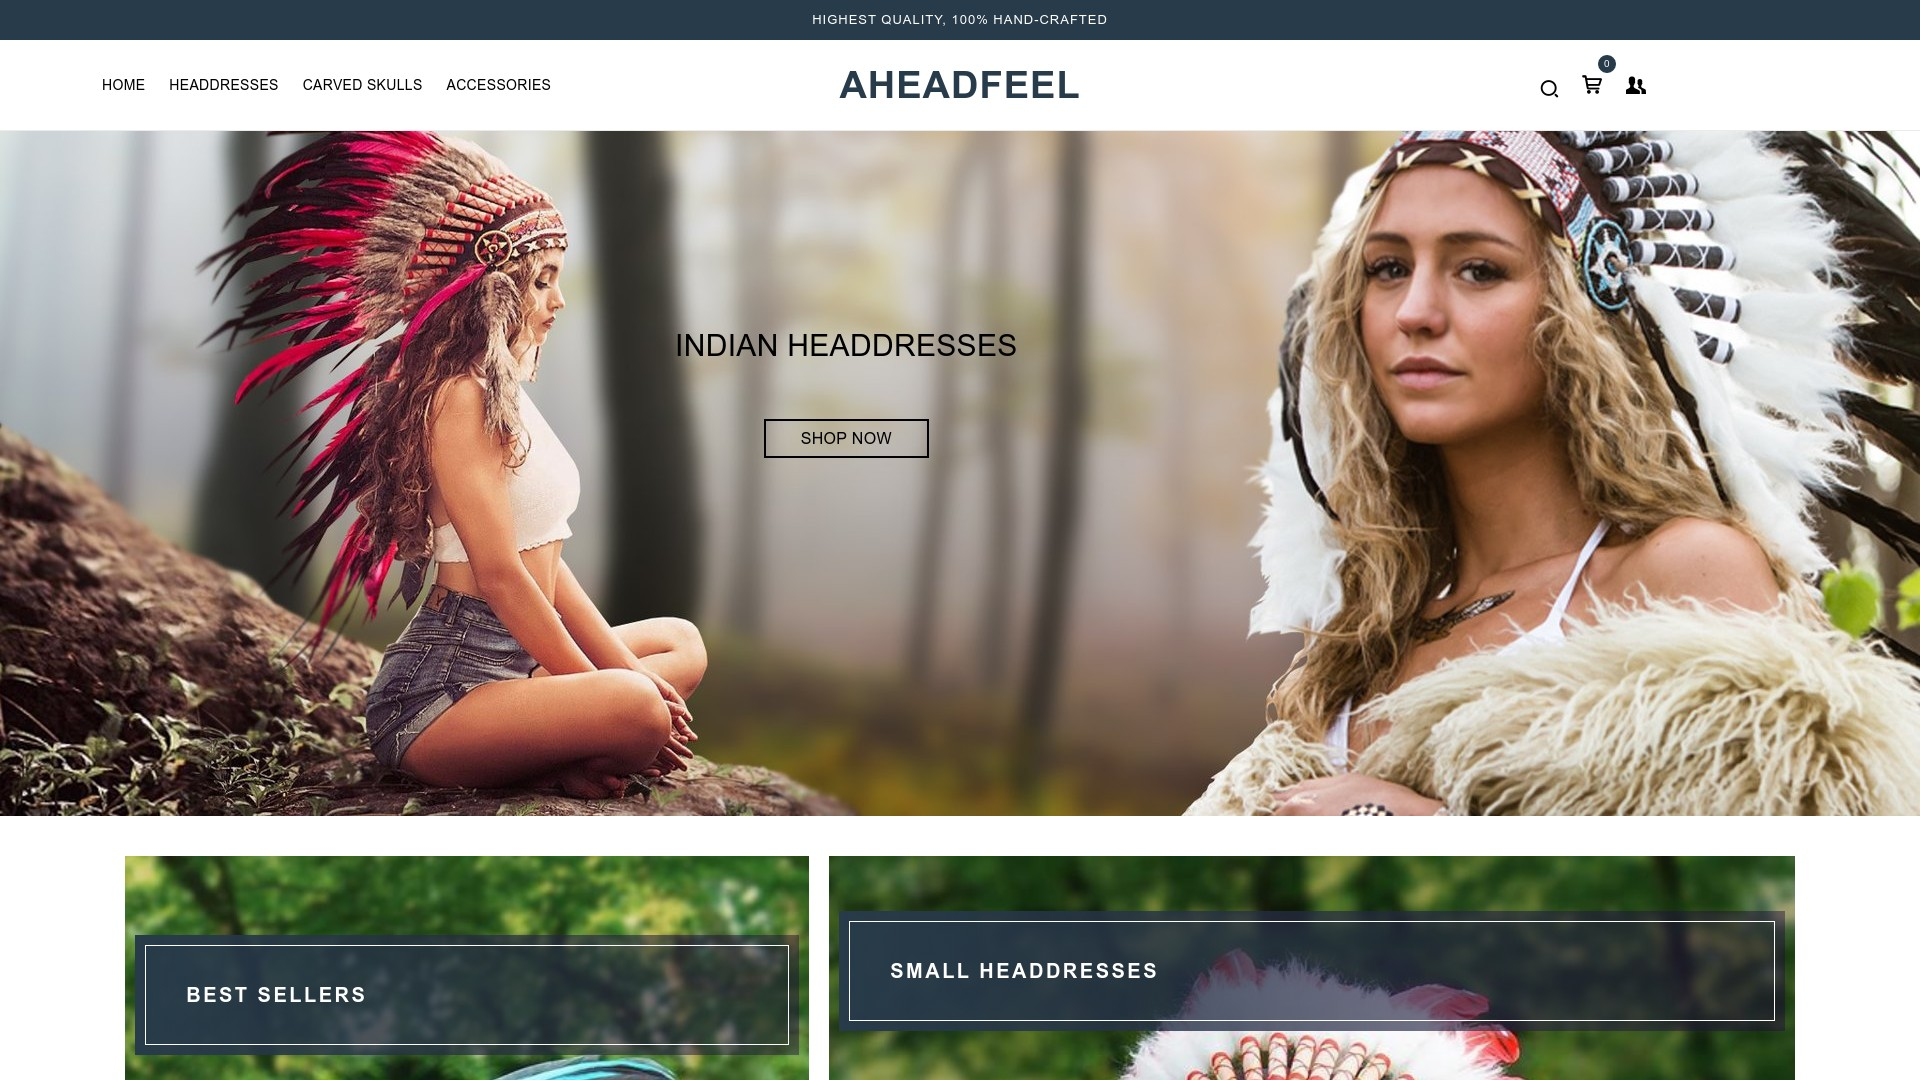 Is Aheadfeel a Scam? See the Review of Aheadfeel.com